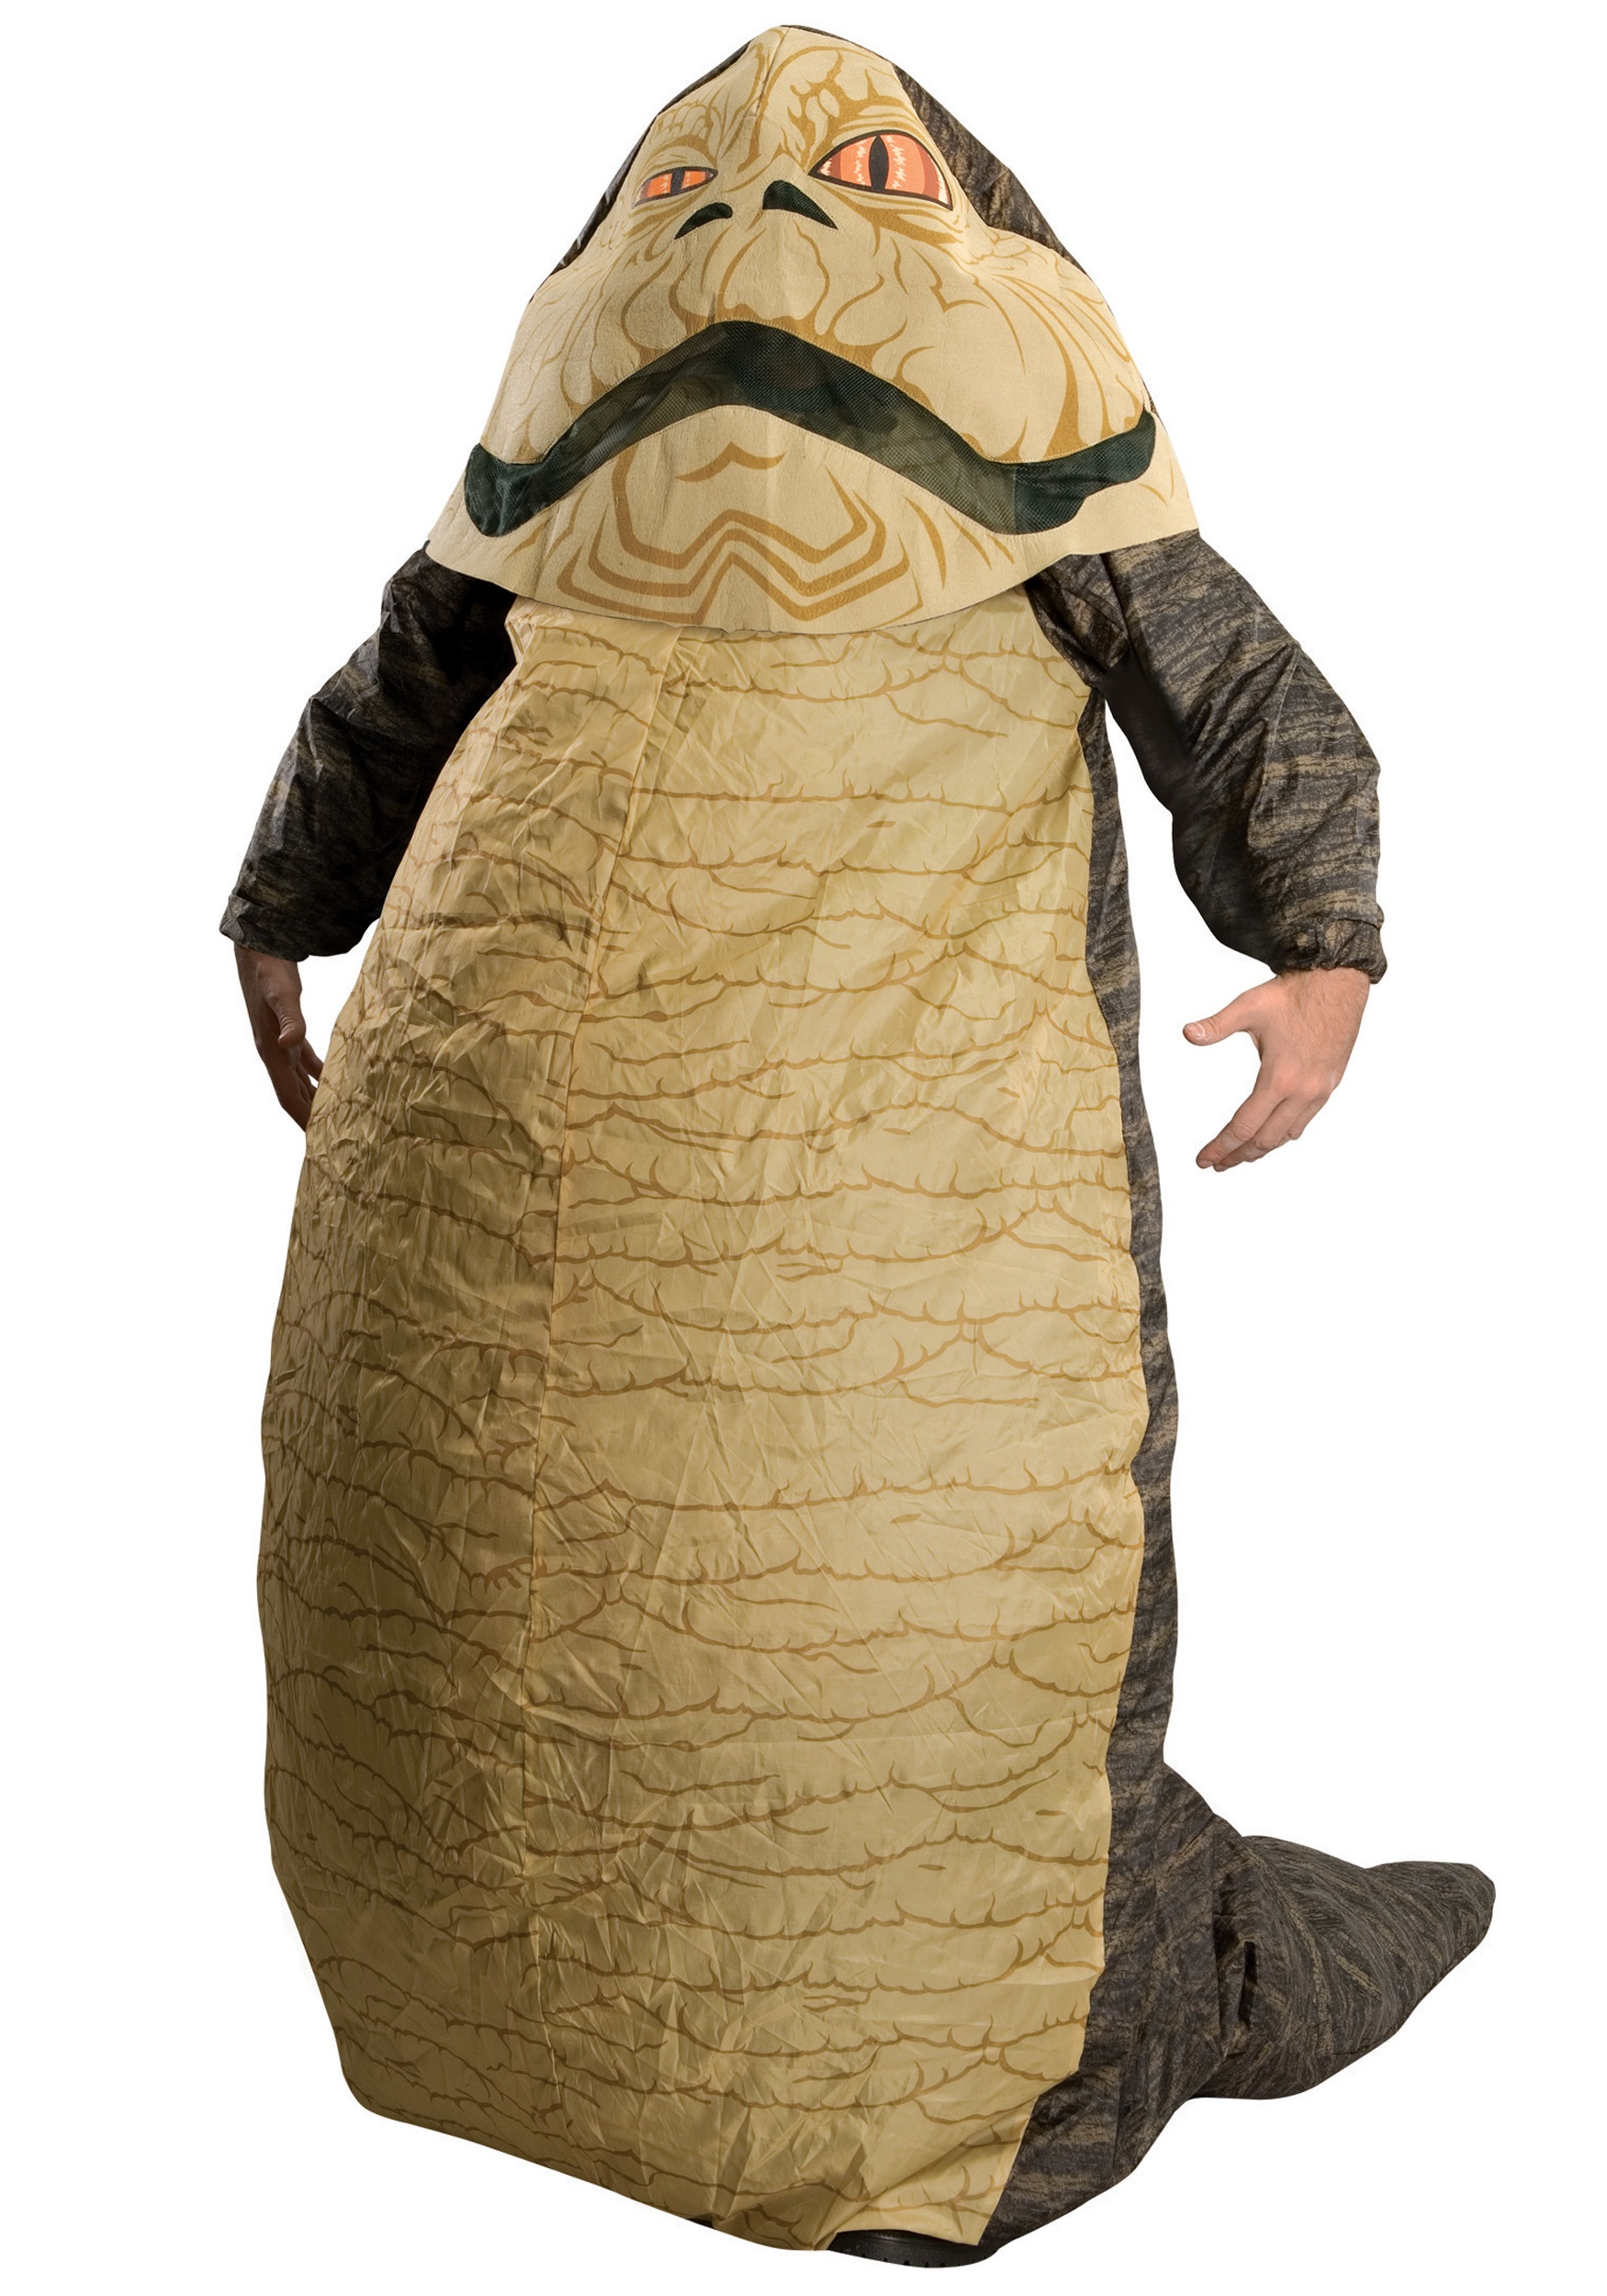 sc 1 st  Halloween Costumes & Adult Jabba the Hutt Costume